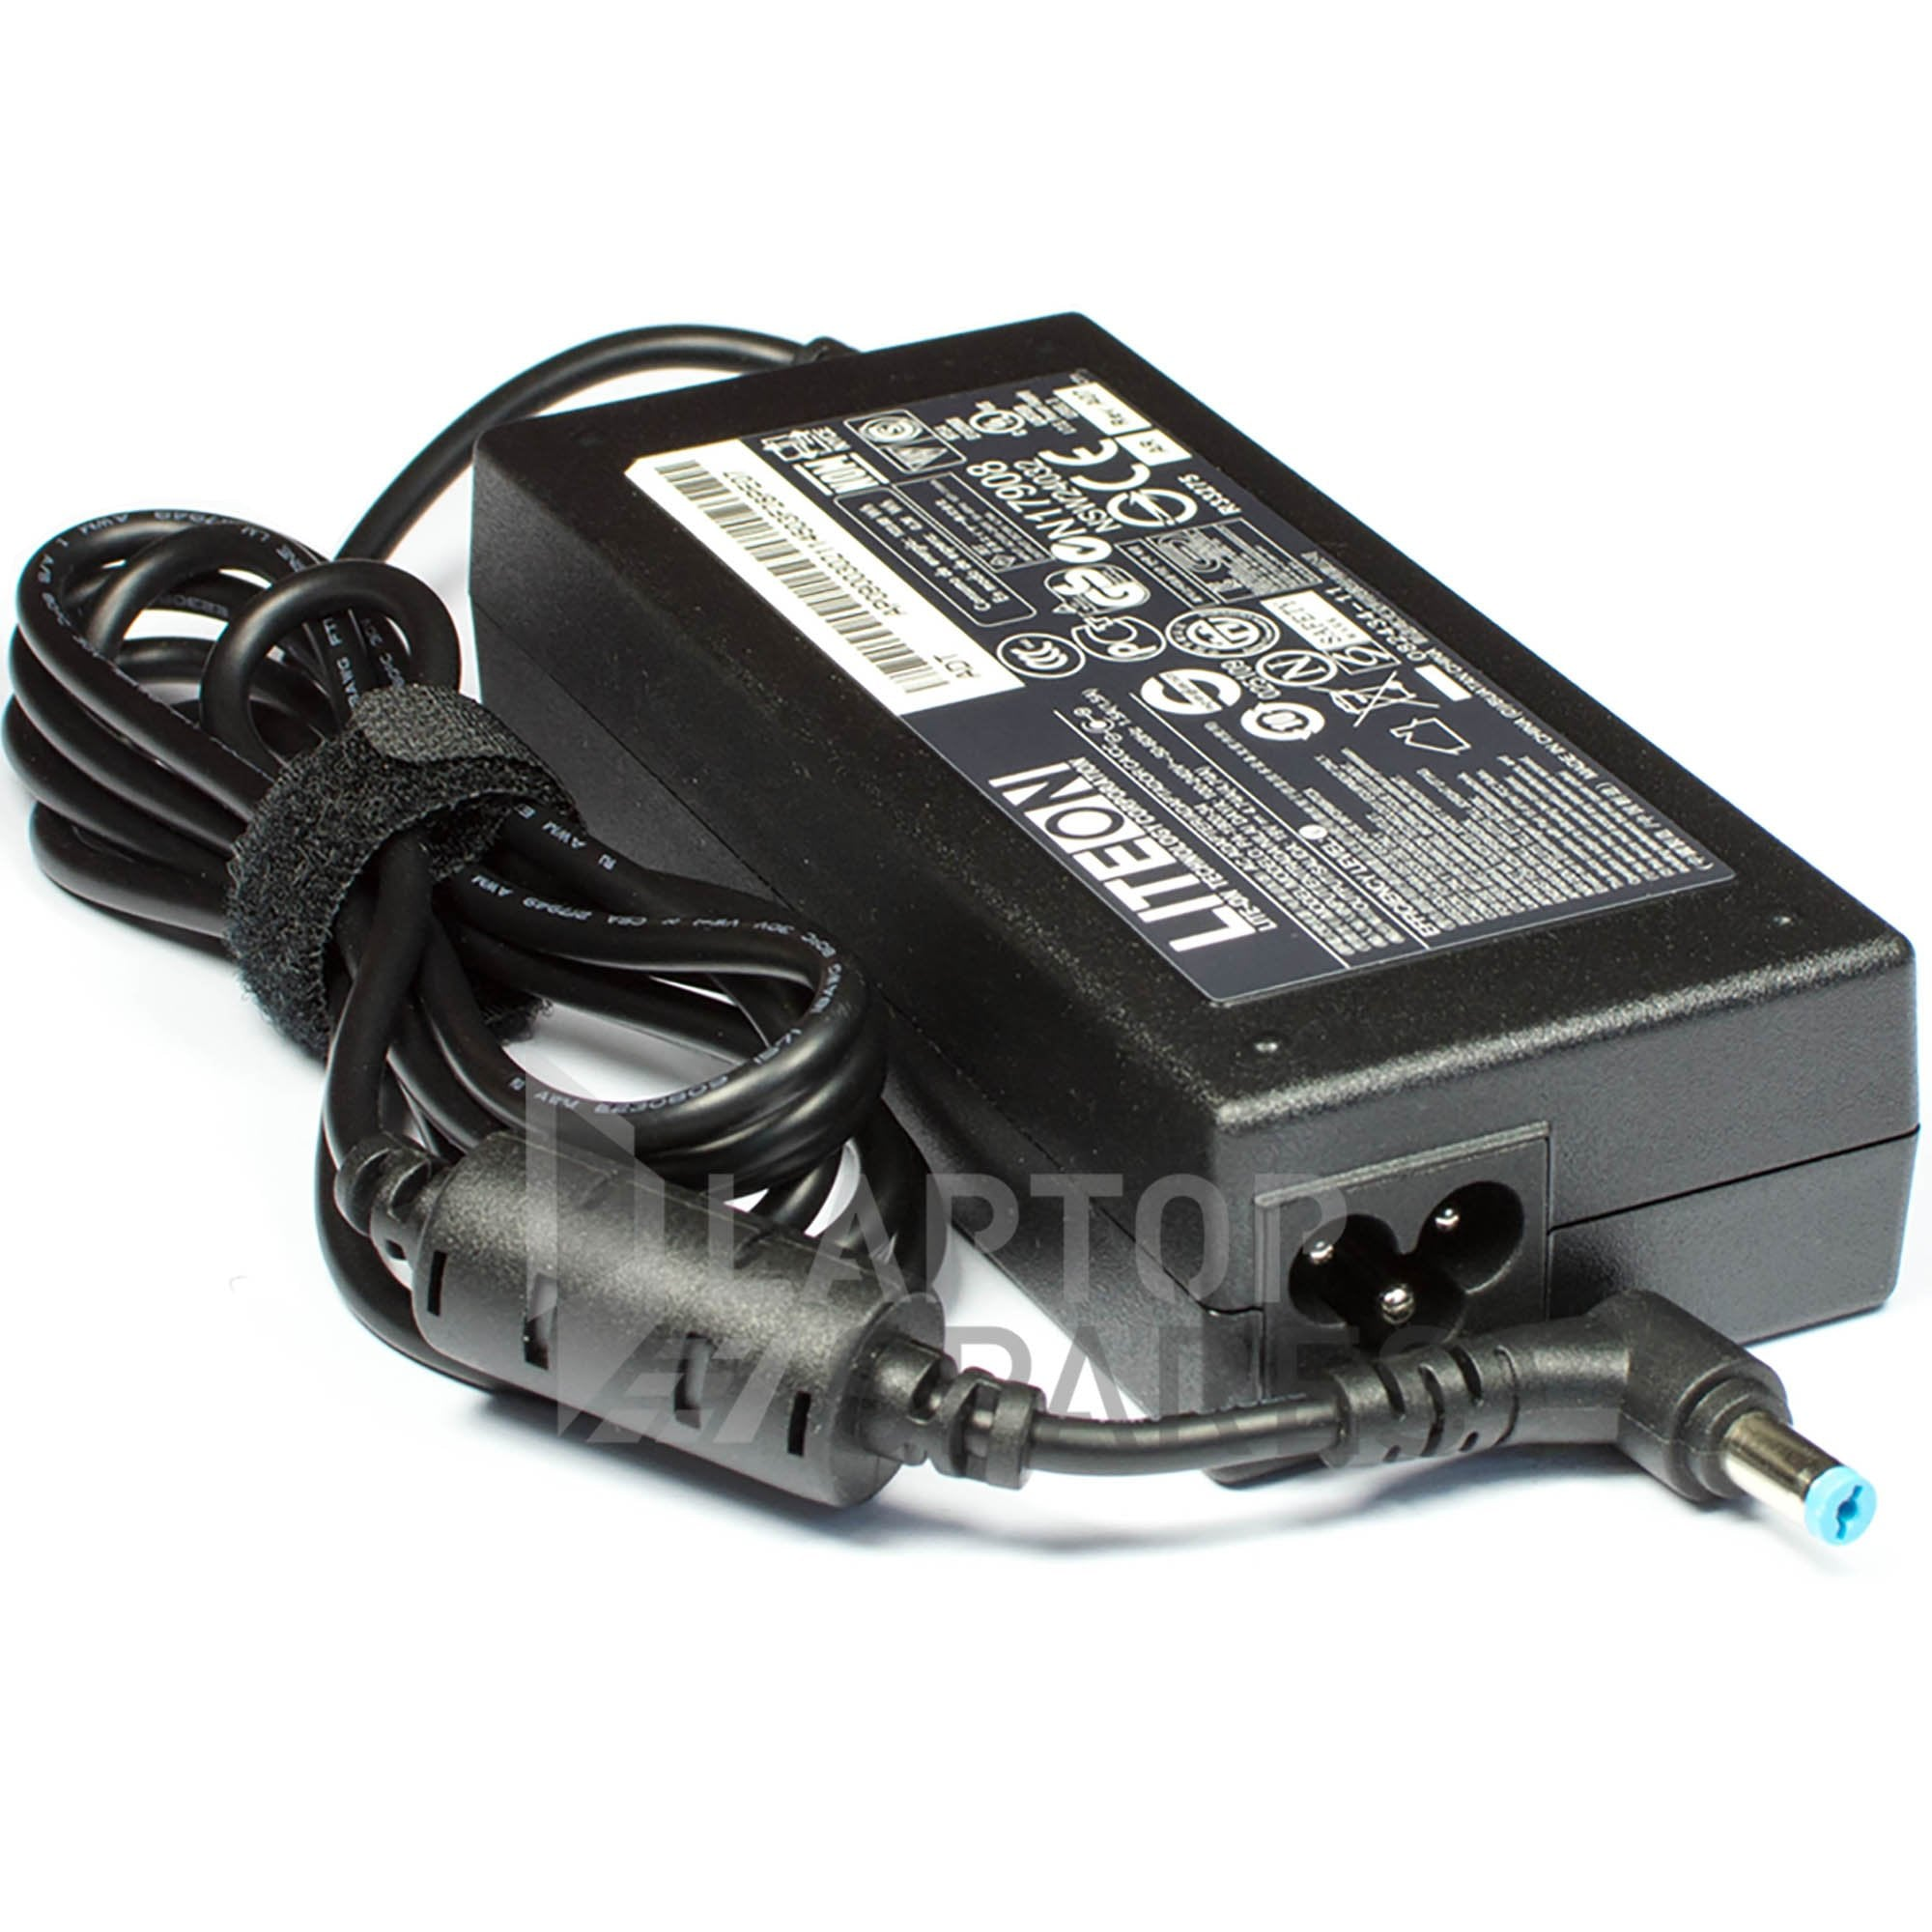 Acer Travelmate 4730 4740 Laptop AC Adapter Charger